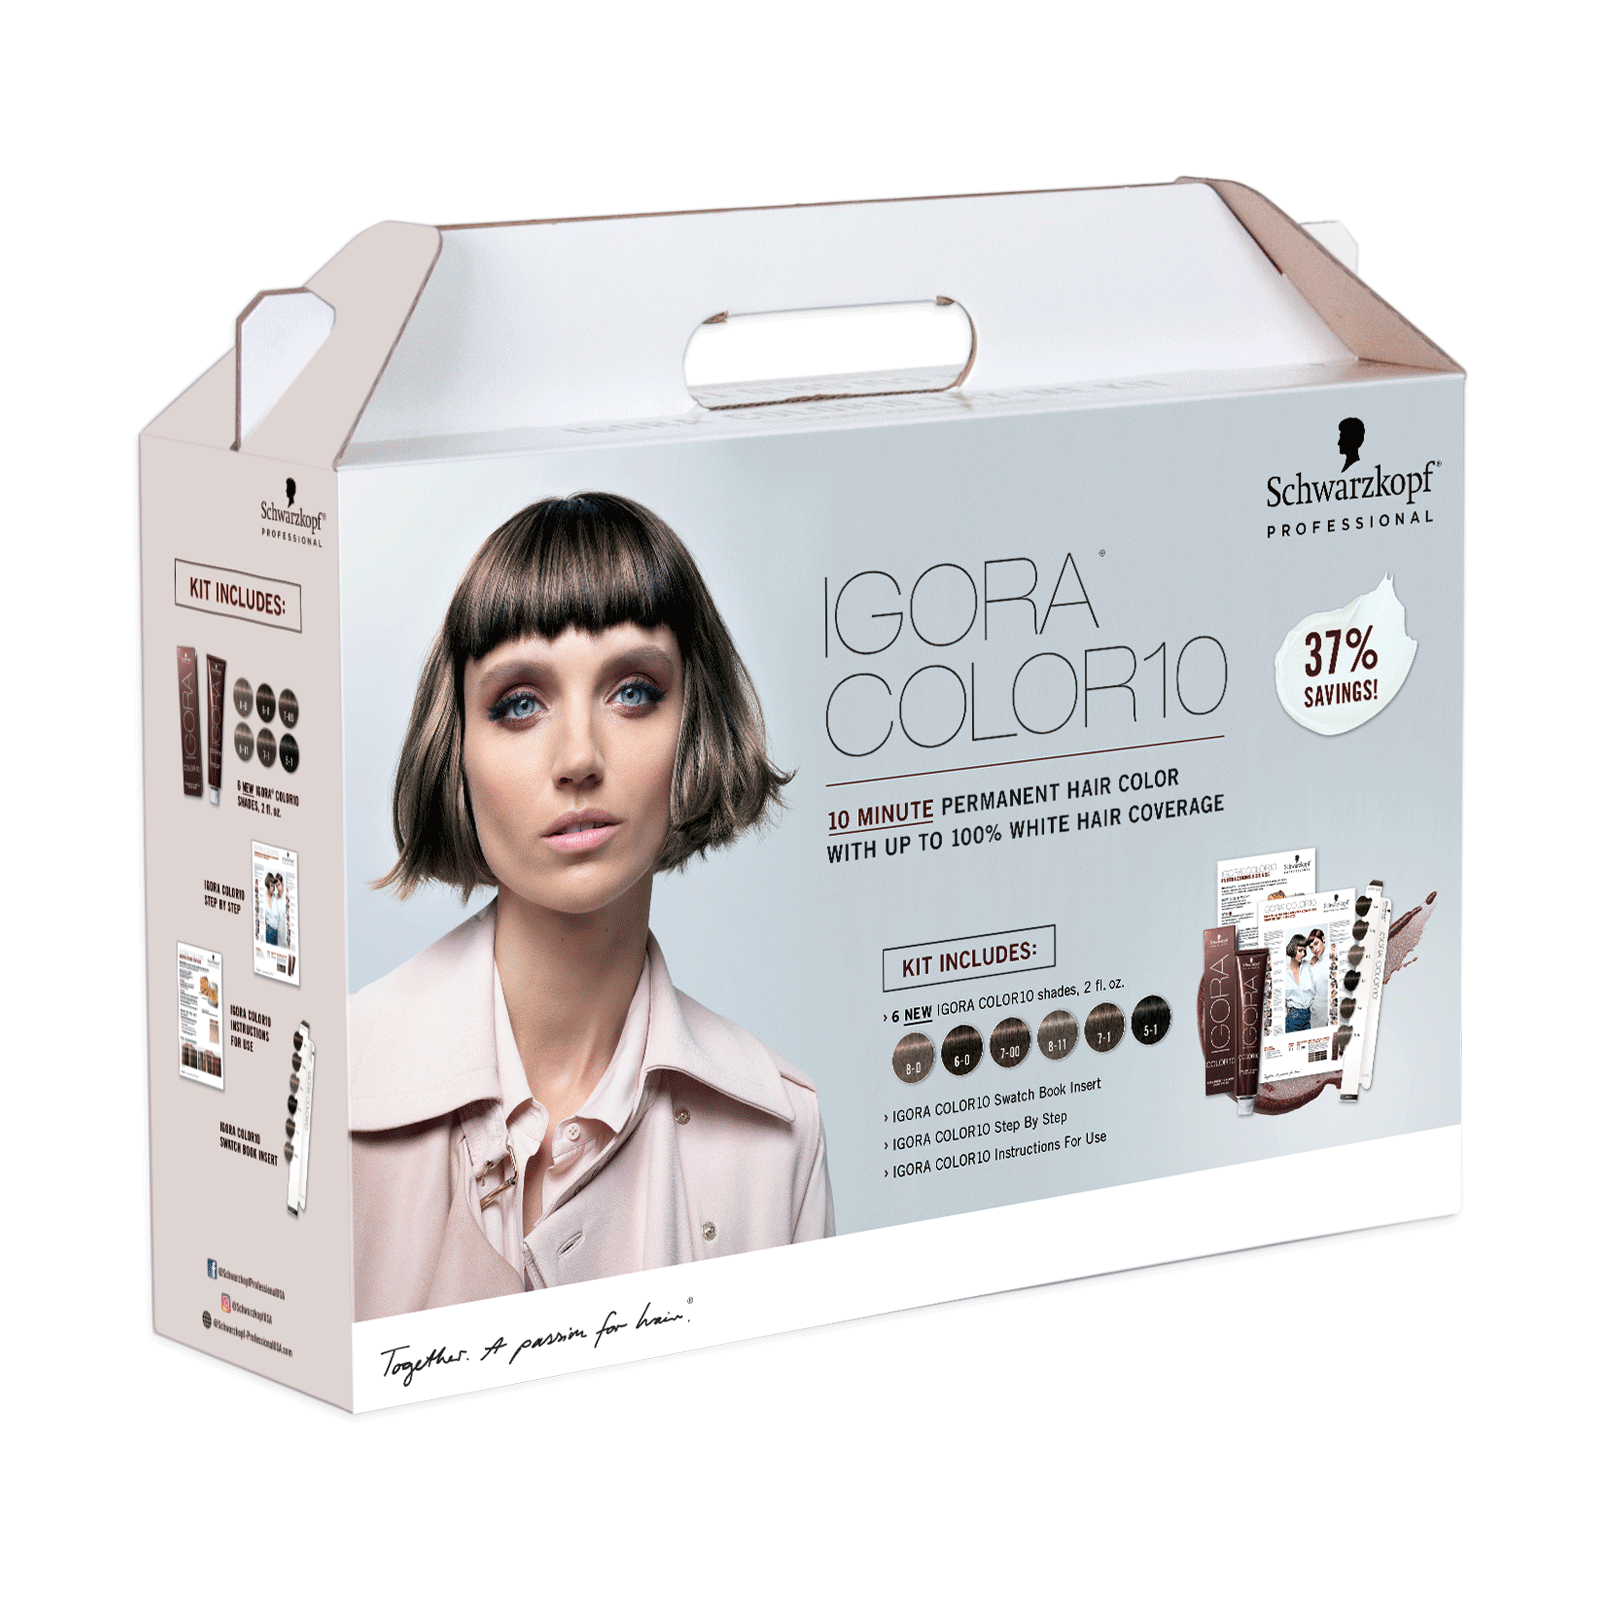 IGORA Color10 Natural & Cool Tones Kit